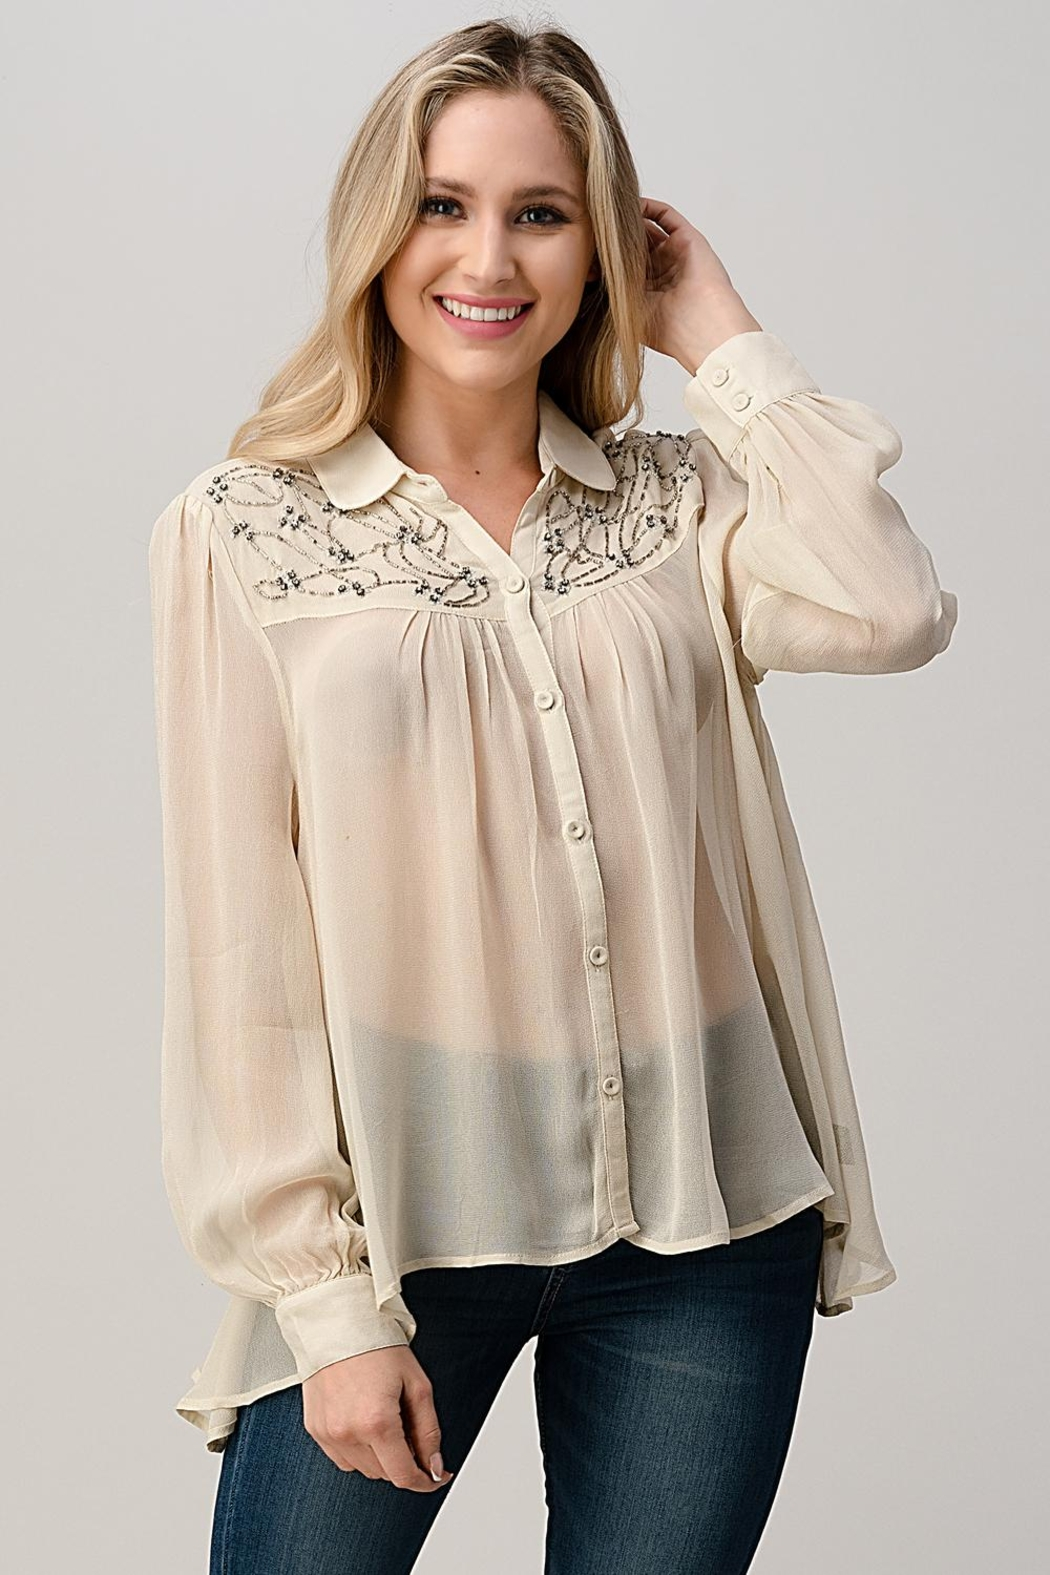 Kaii Mesh Blouse Shirt Top With Beaded Jewel Trim - Front Cropped Image